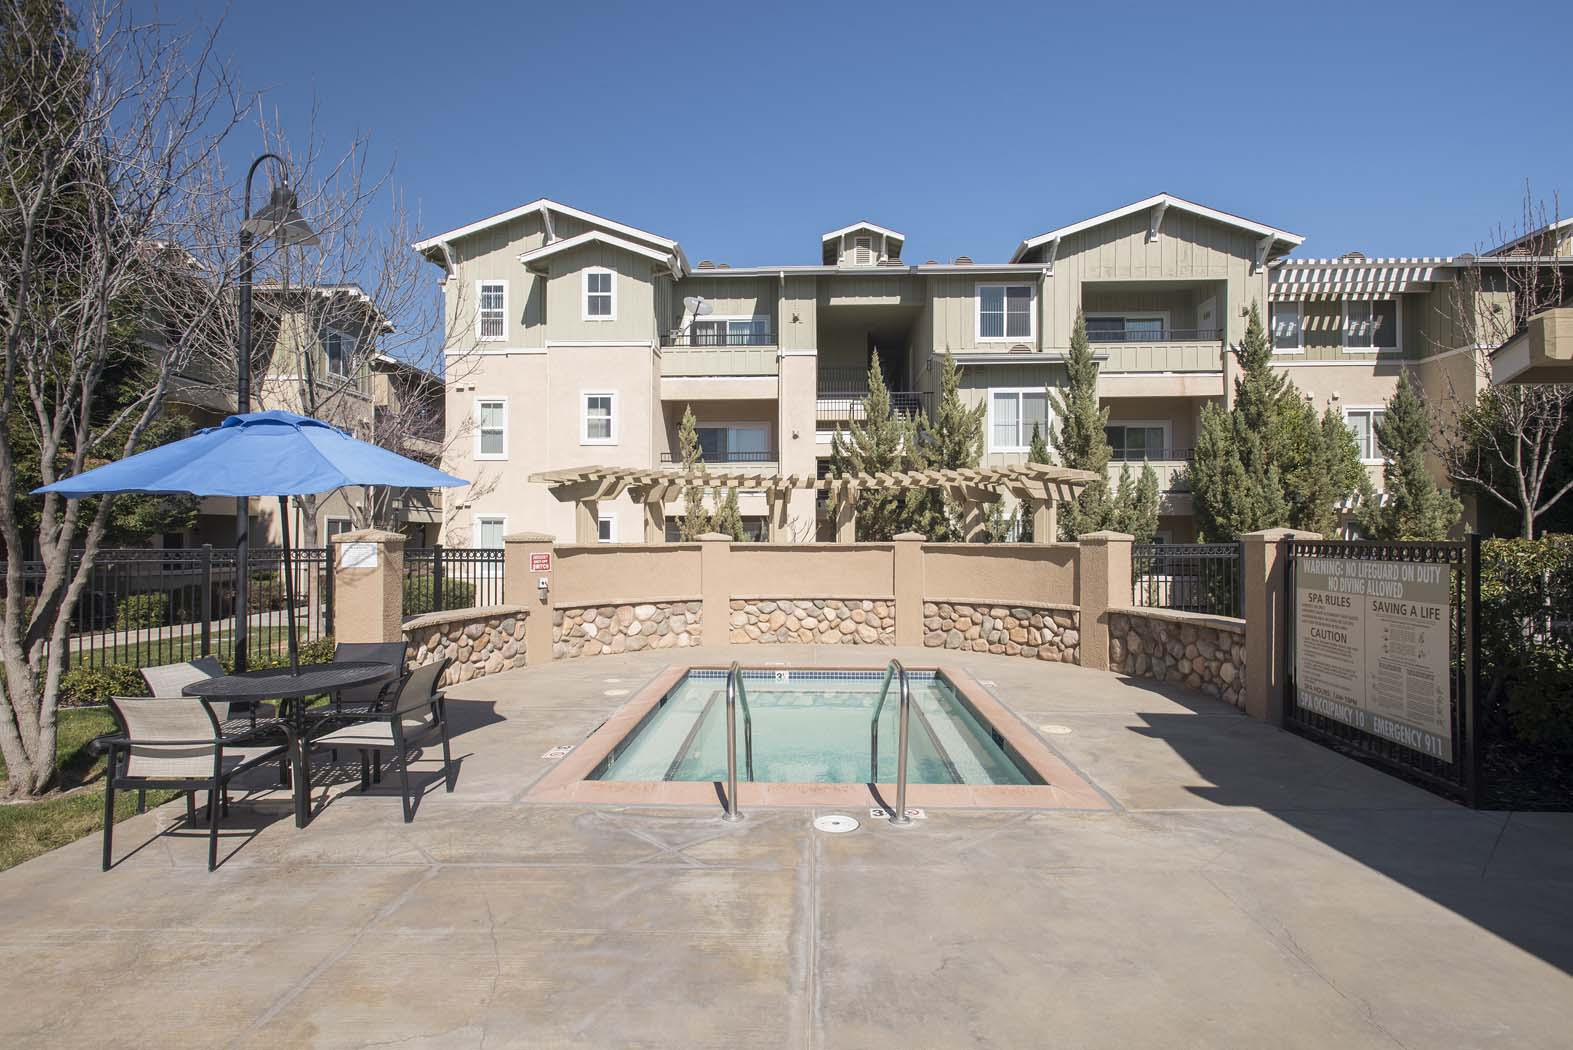 Year-Round Hot Tub at Waterstone Apartment Homes, Tracy, CA, 95377